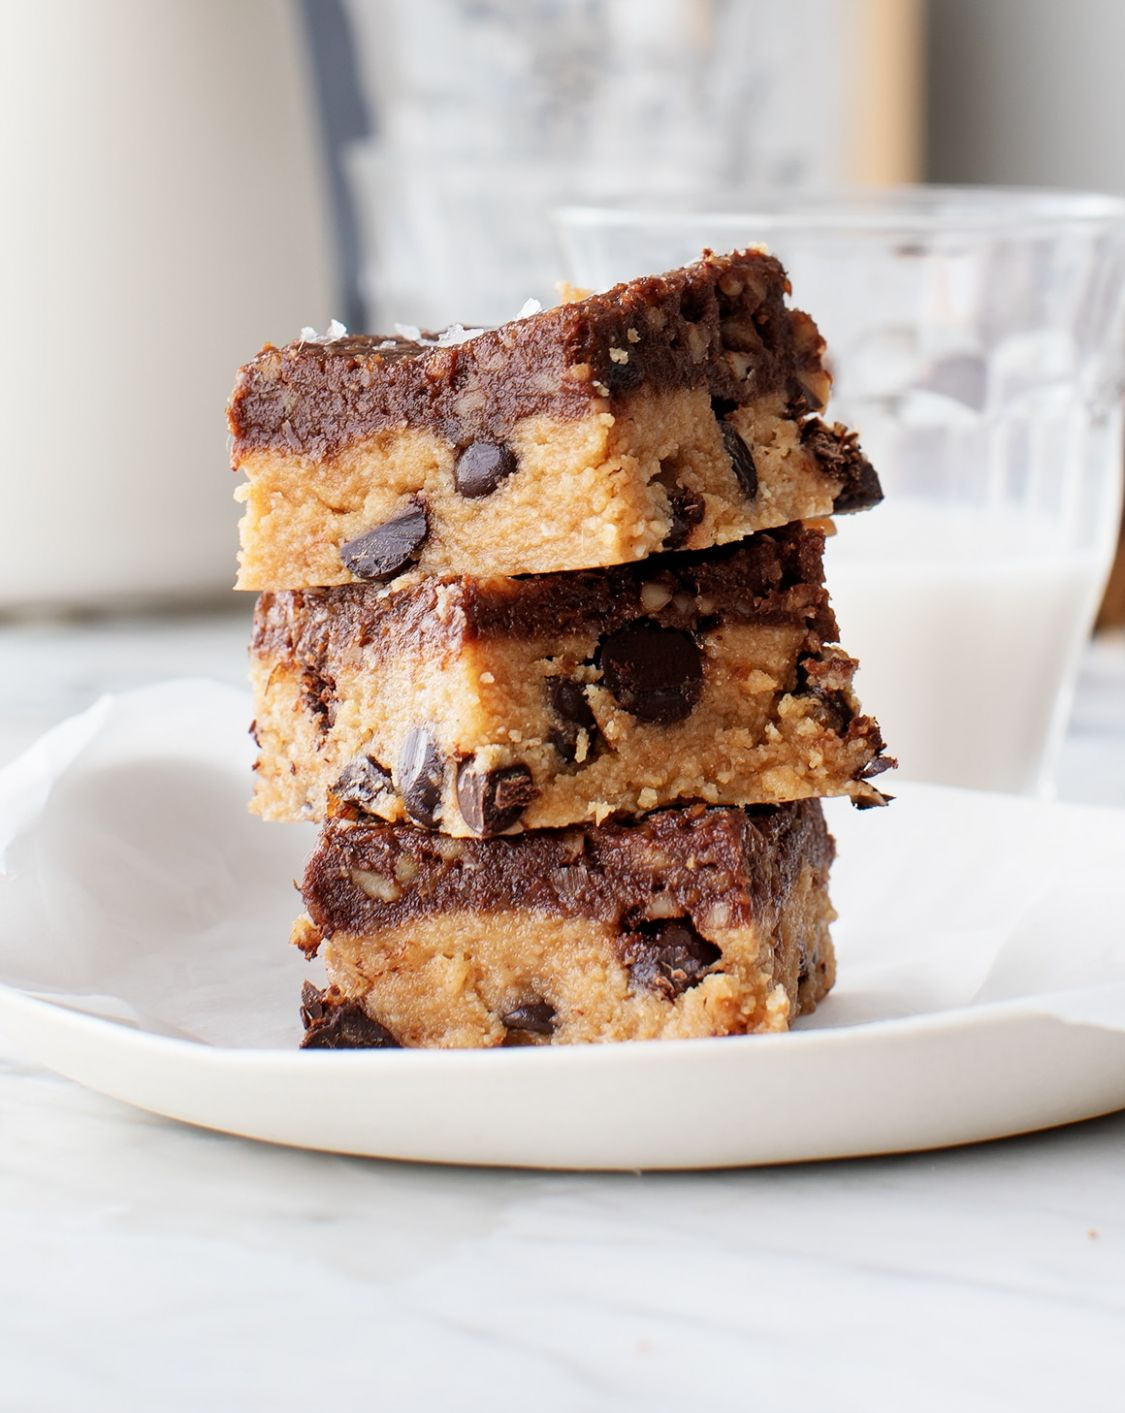 Vegan Desserts: Peanut Butter Cookie Bars